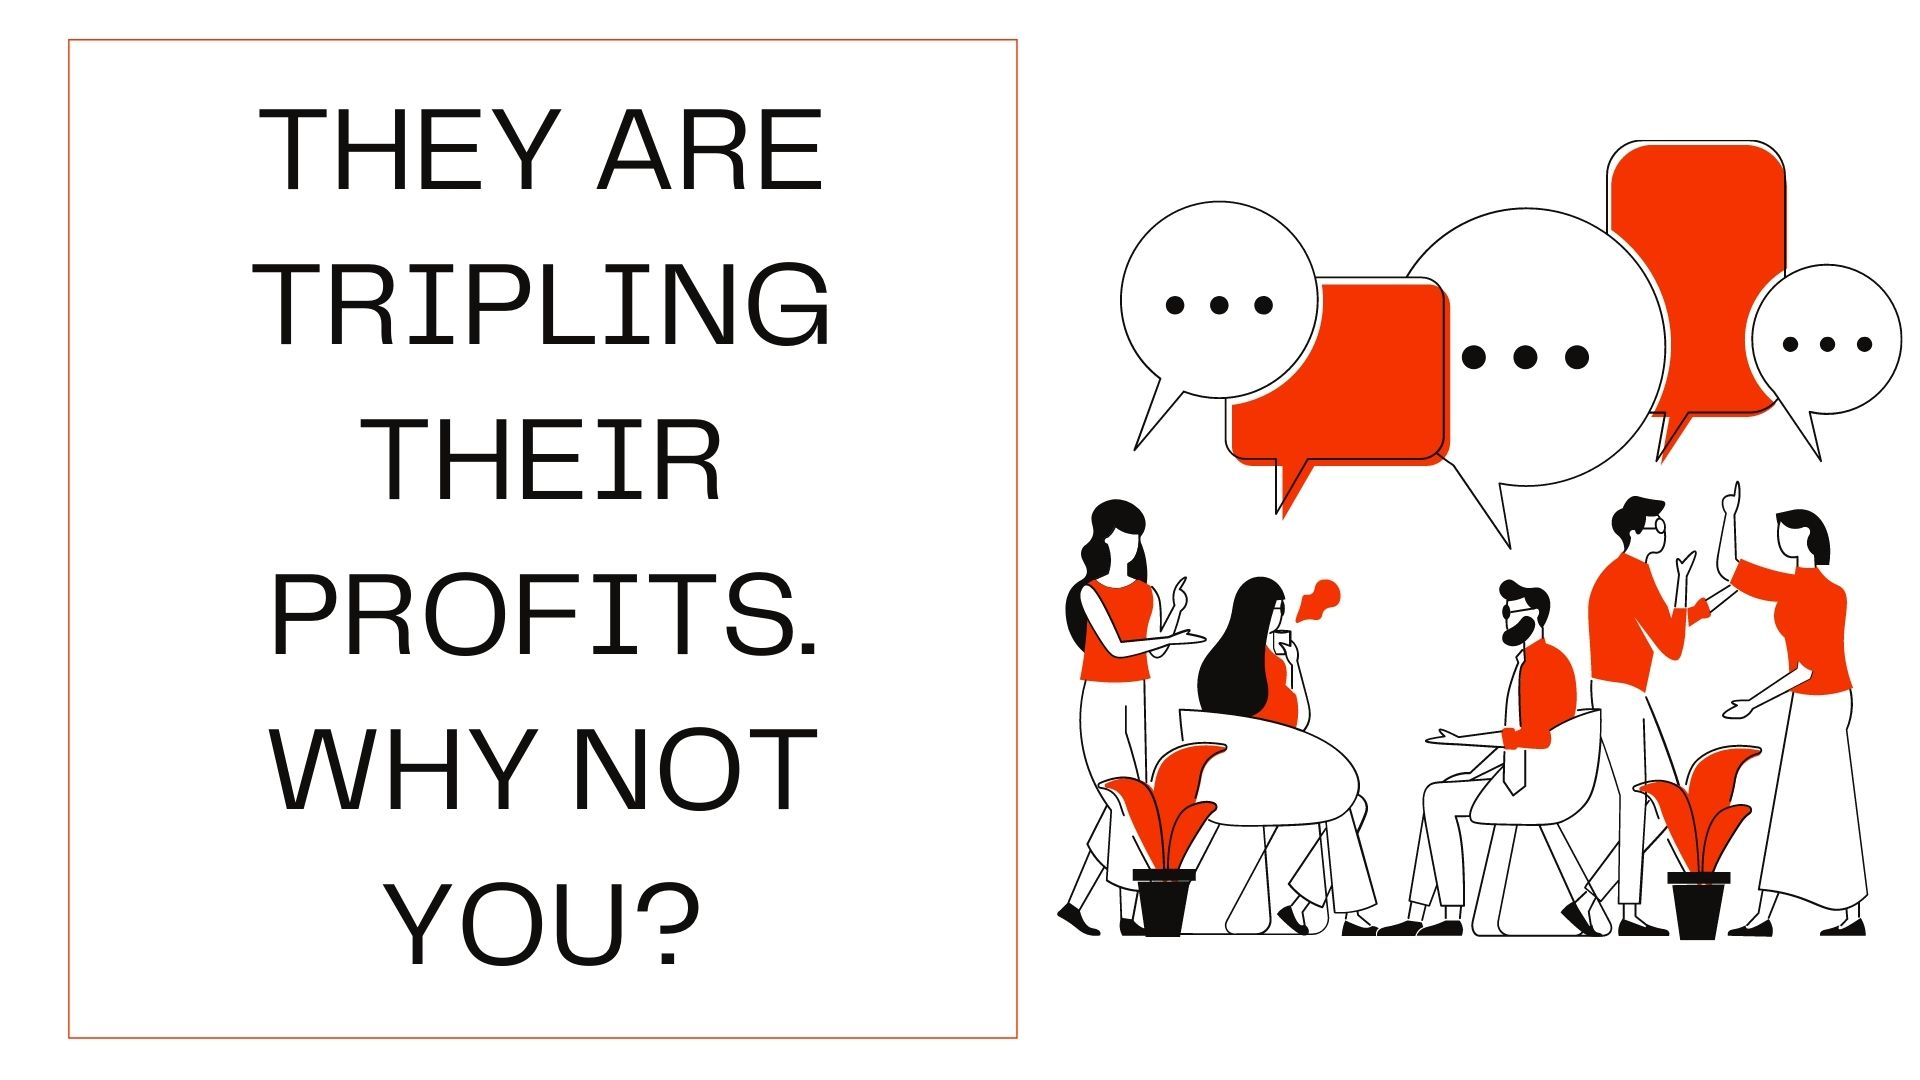 They are tripling their profits. Why not you?